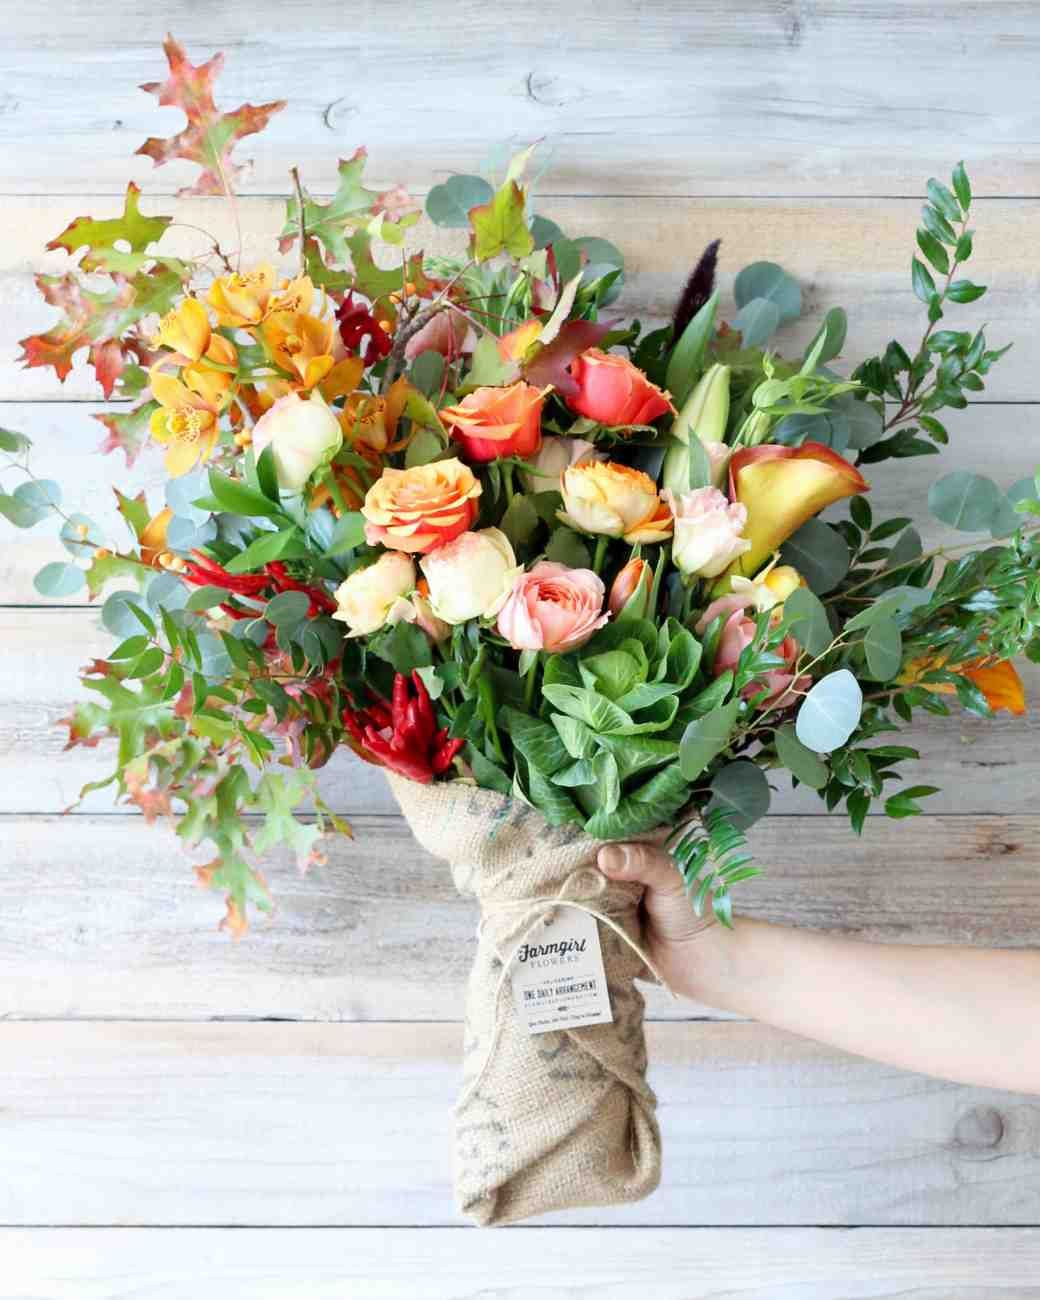 What Do You Get Your Bride For A Wedding Gift: 30 Hostess Gifts For Your Mother-in-Law